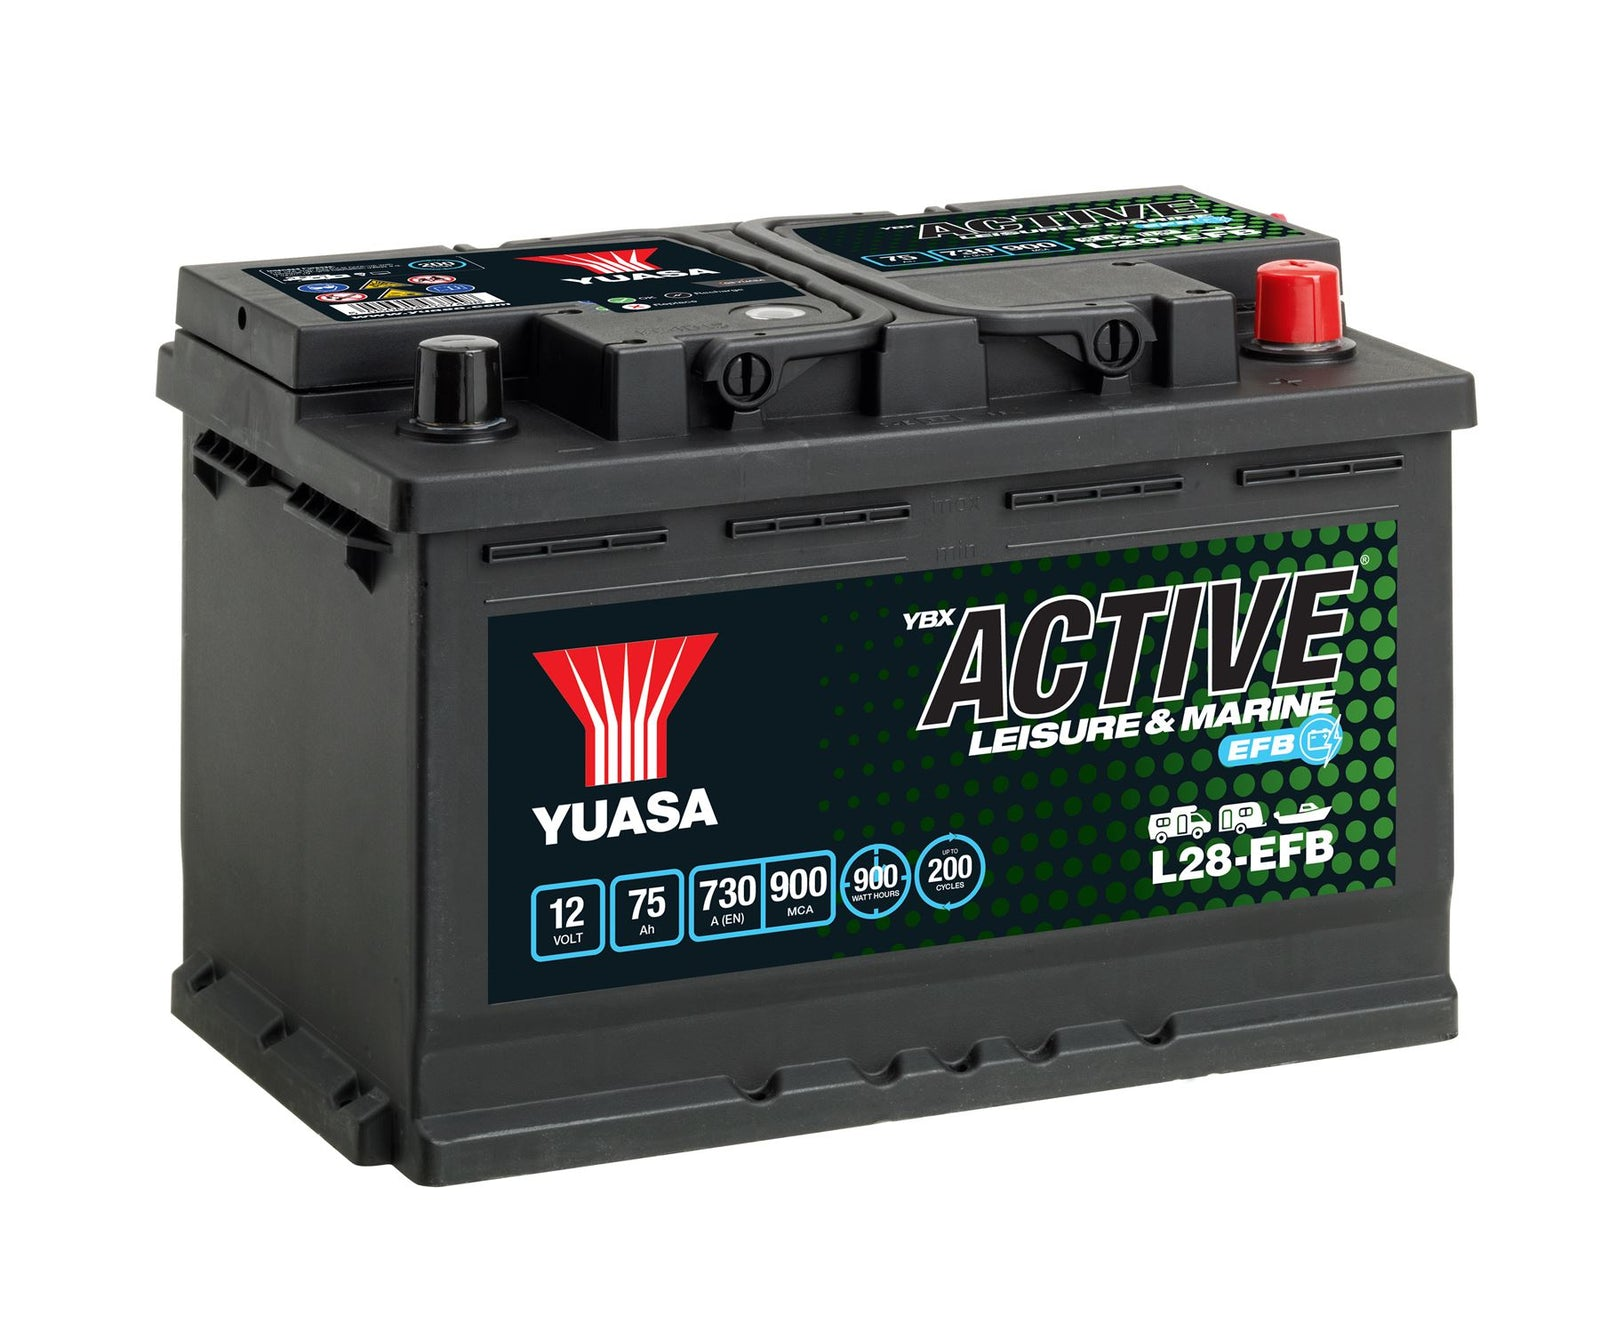 Yuasa L28-EFB Active Leisure & Marine EFB Battery